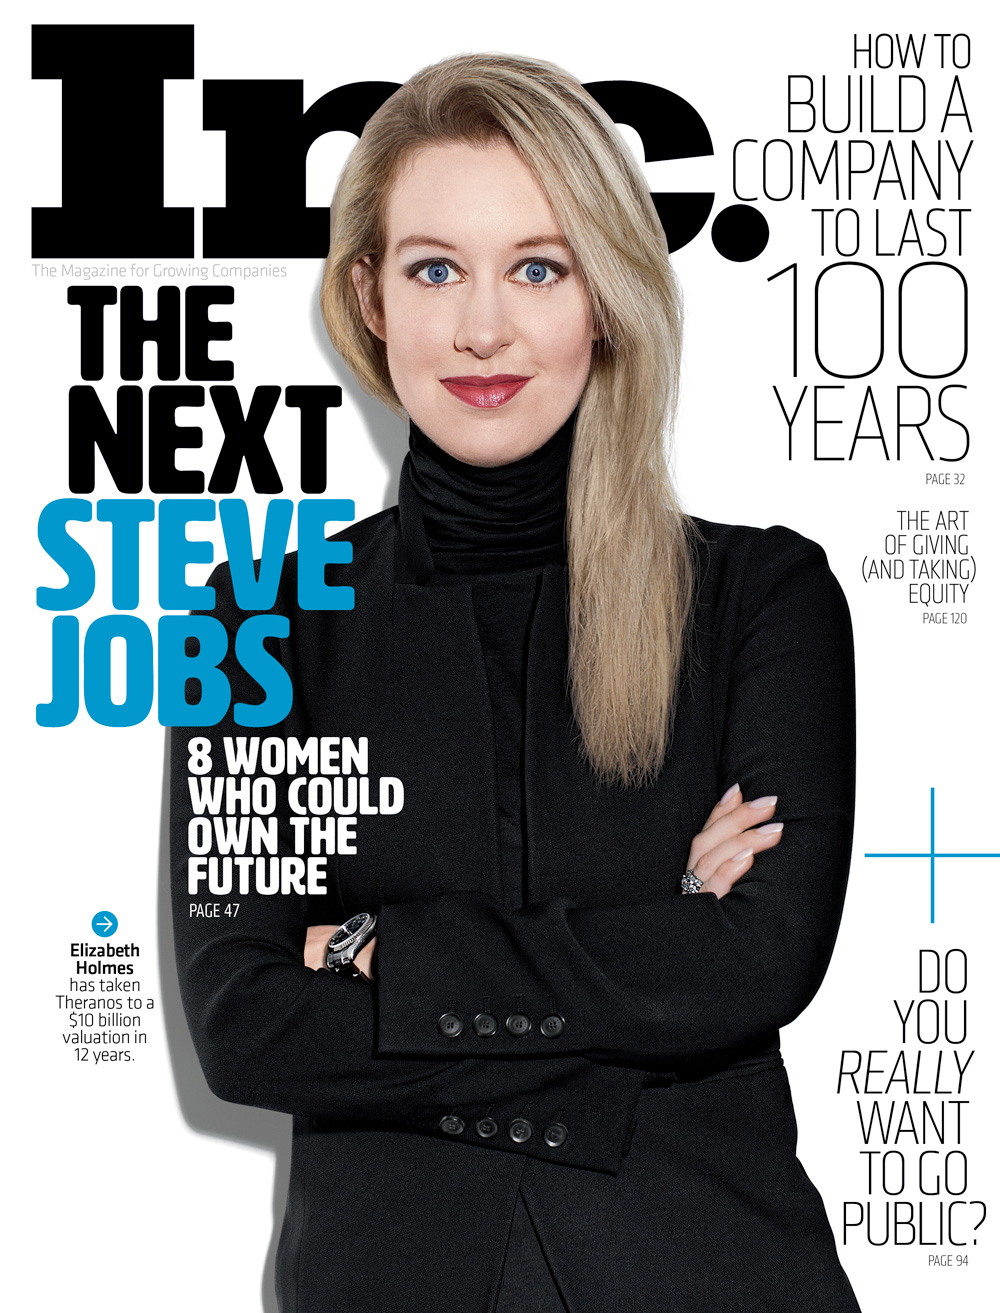 INC. MAGAZINE  Everything you need to know to start and grow your business now. Each issue provides a source of inspiration, education and connection for the owners of fast-growing private businesses.   MORE...